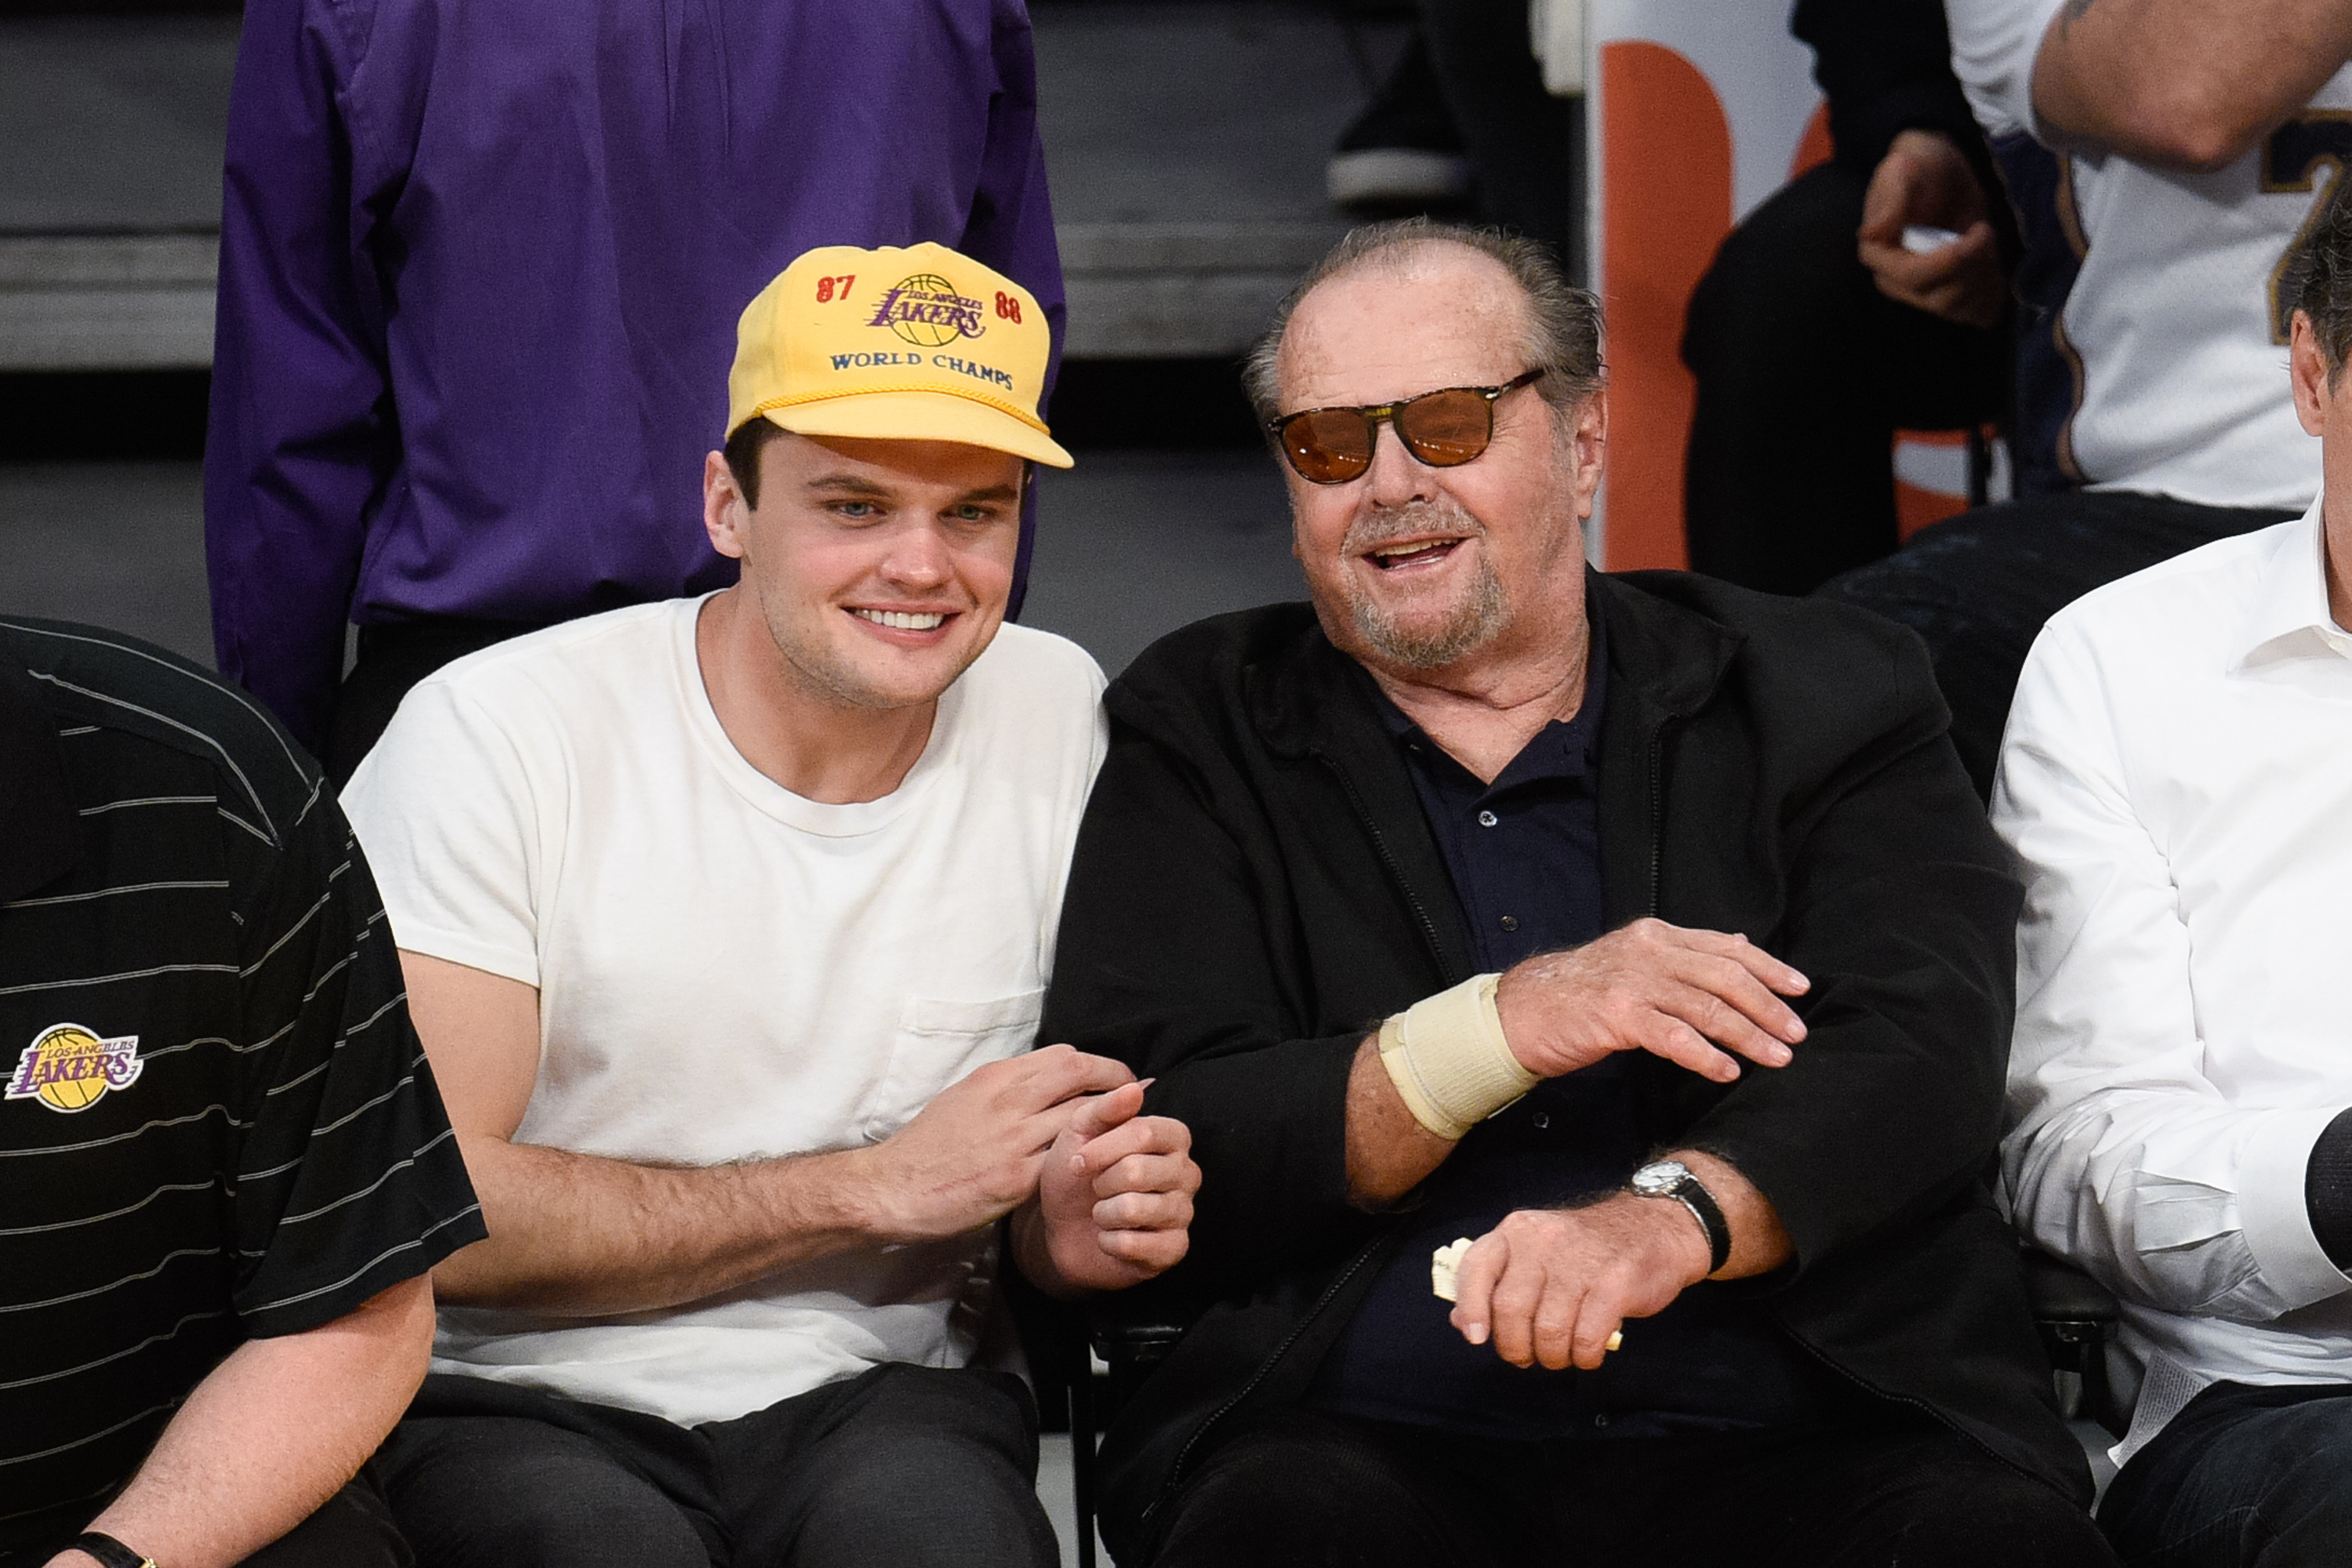 Jack Nicholson (R) and Ray Nicholson attend a basketball game between the Golden State Warriors and the Los Angeles Lakers at Staples Center on March 6, 2016 in Los Angeles, California.